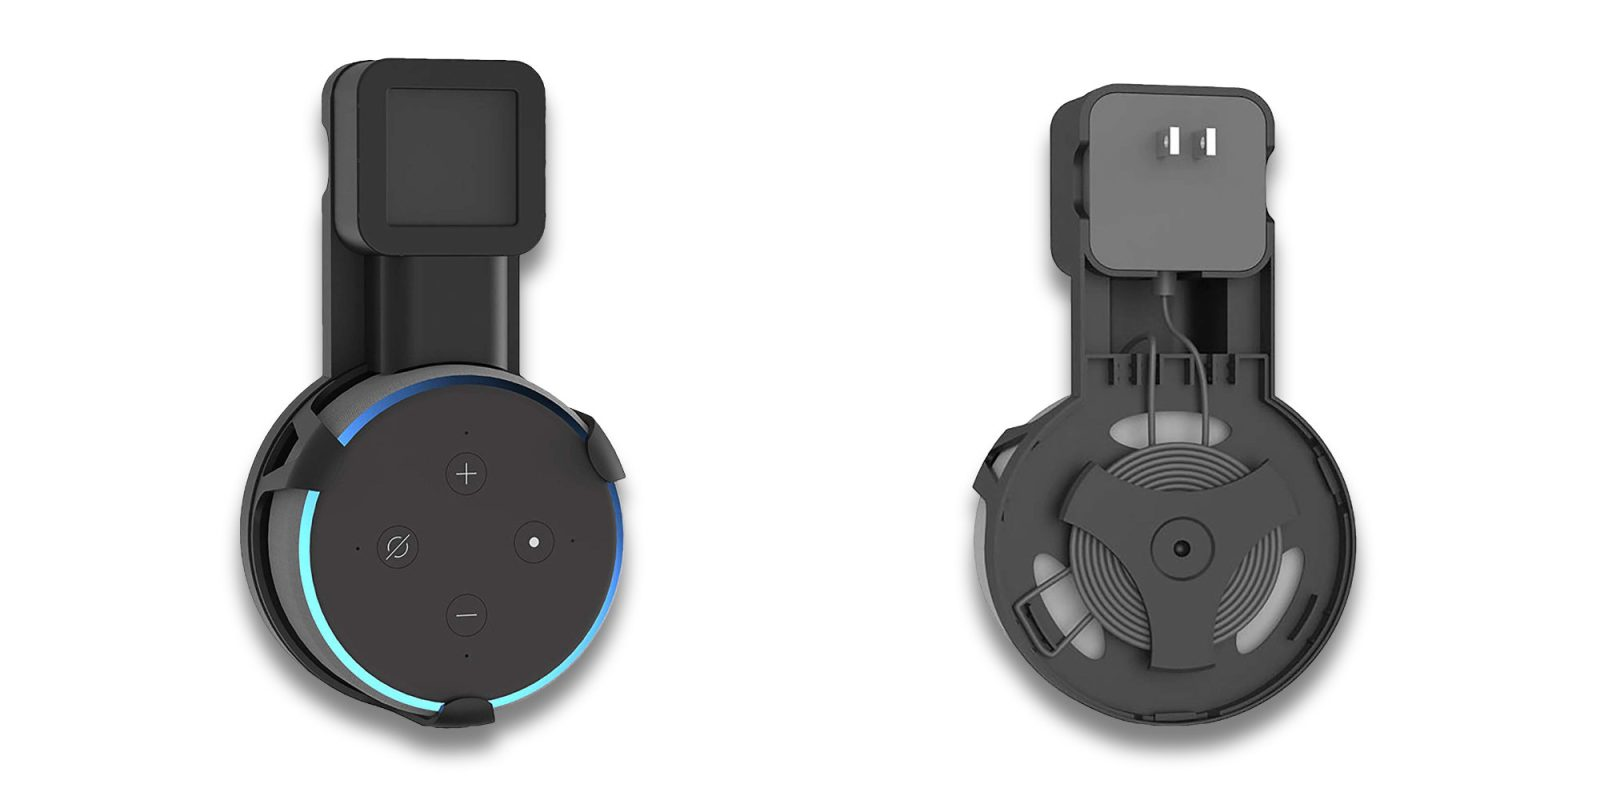 Pick up two WALI Echo Dot Outlet Mounts for just $8.50 at Amazon